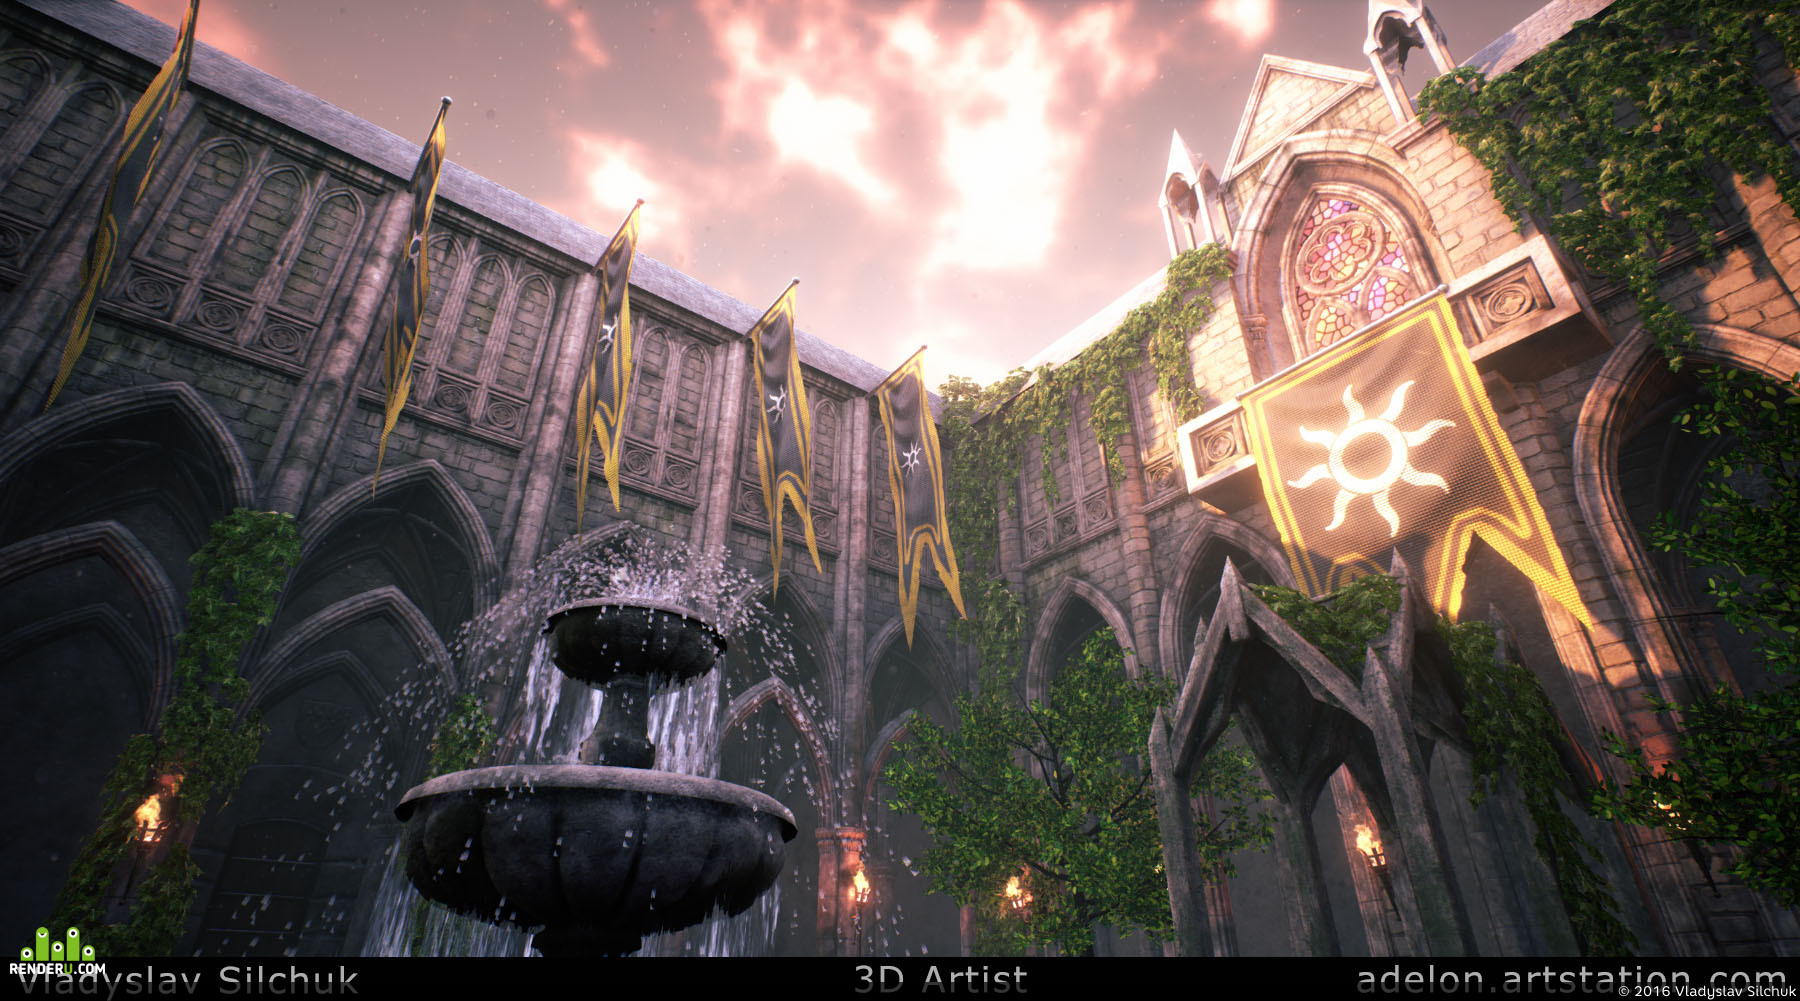 UE4] Medieval Courtyard - The Witcher 3 Fan Art